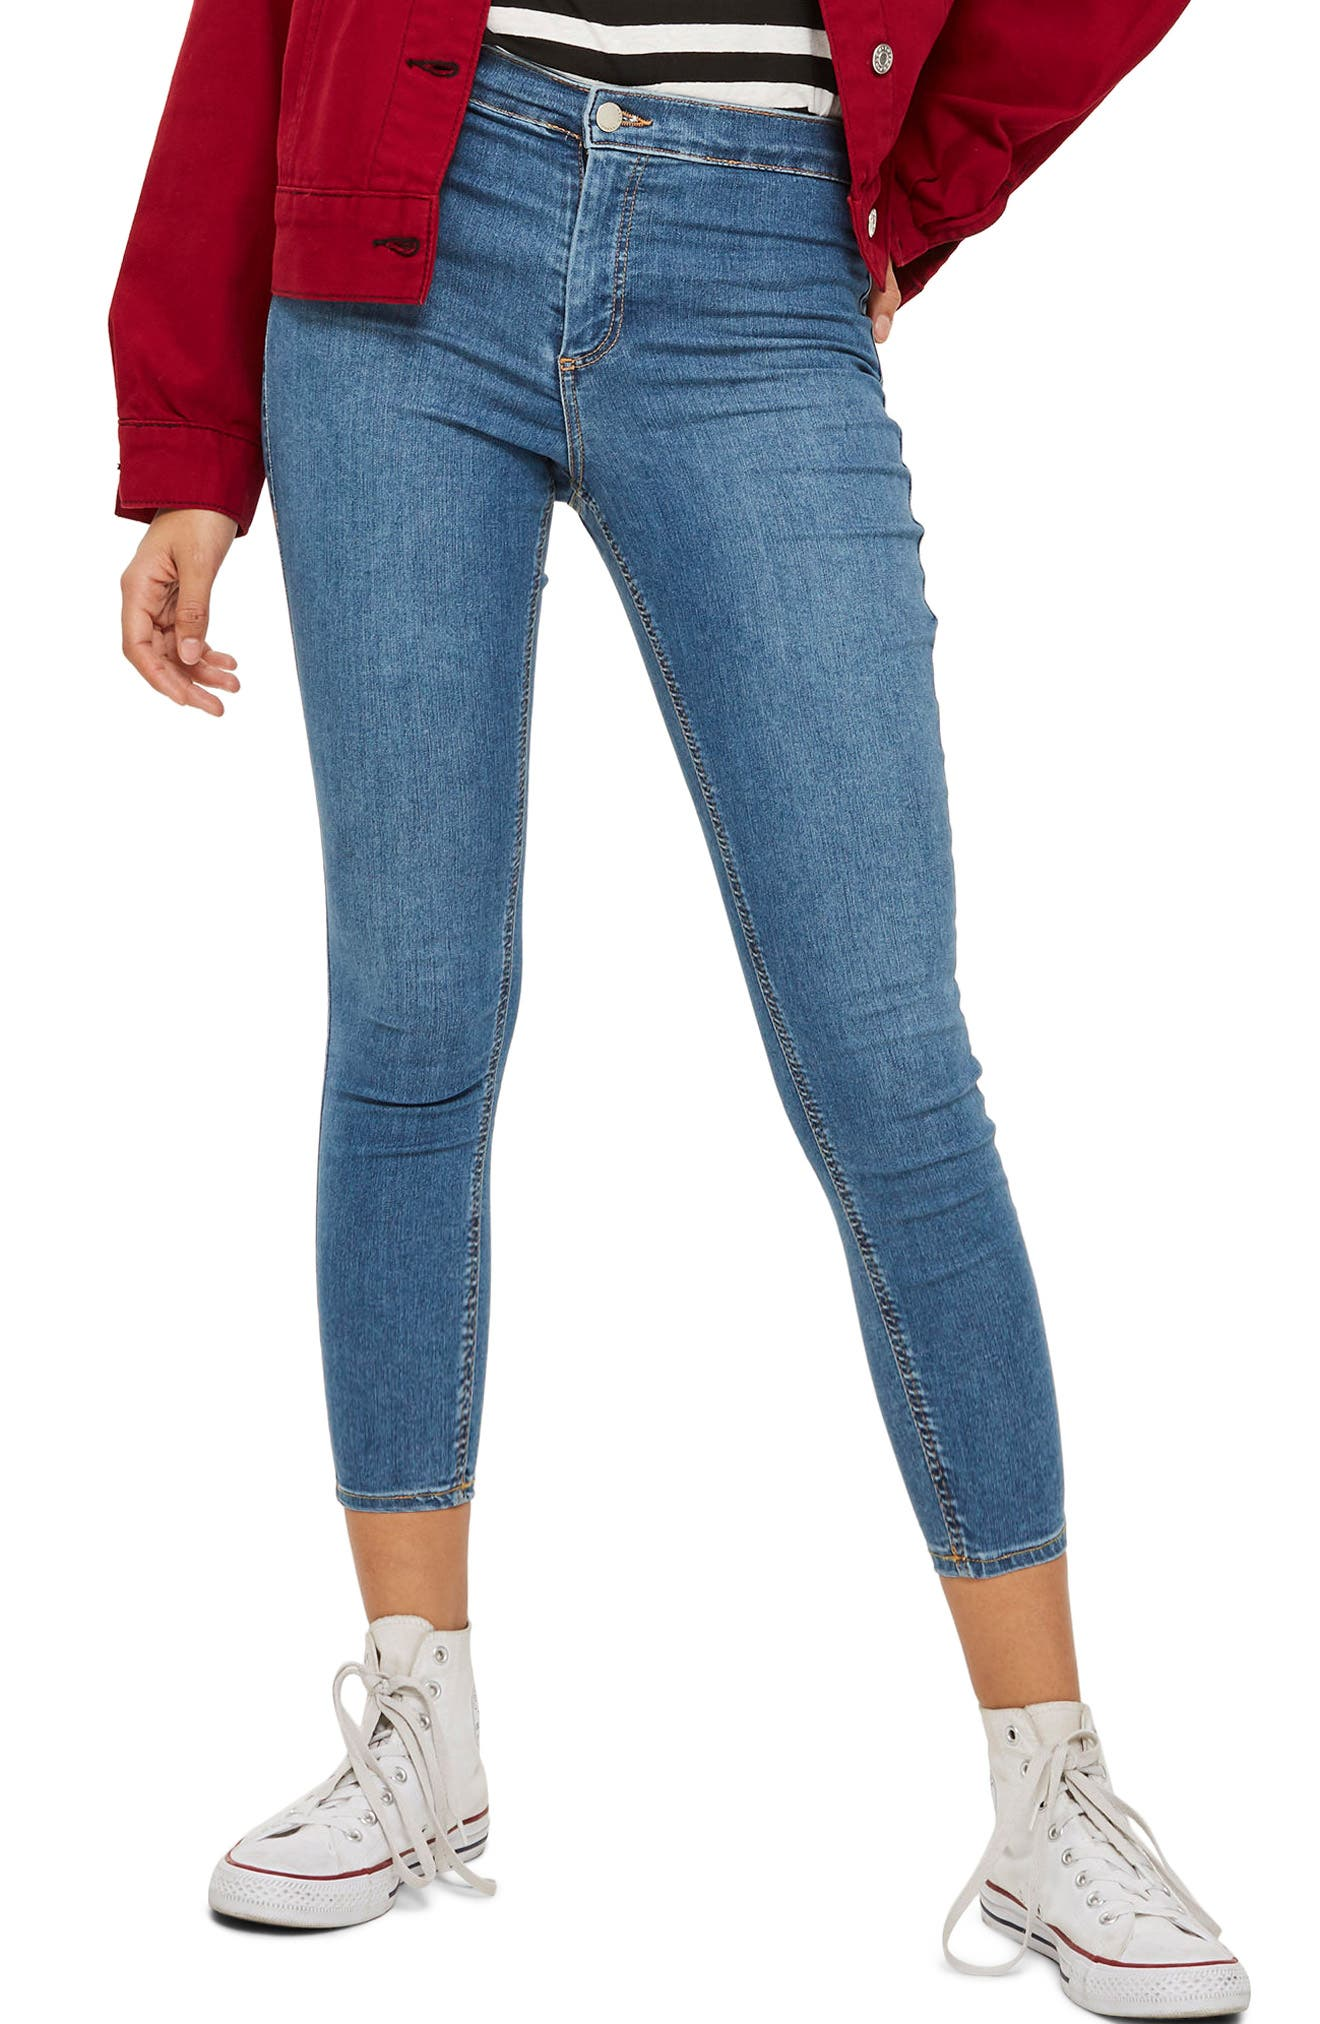 Joni Skinny Jeans,                         Main,                         color, Mid Denim